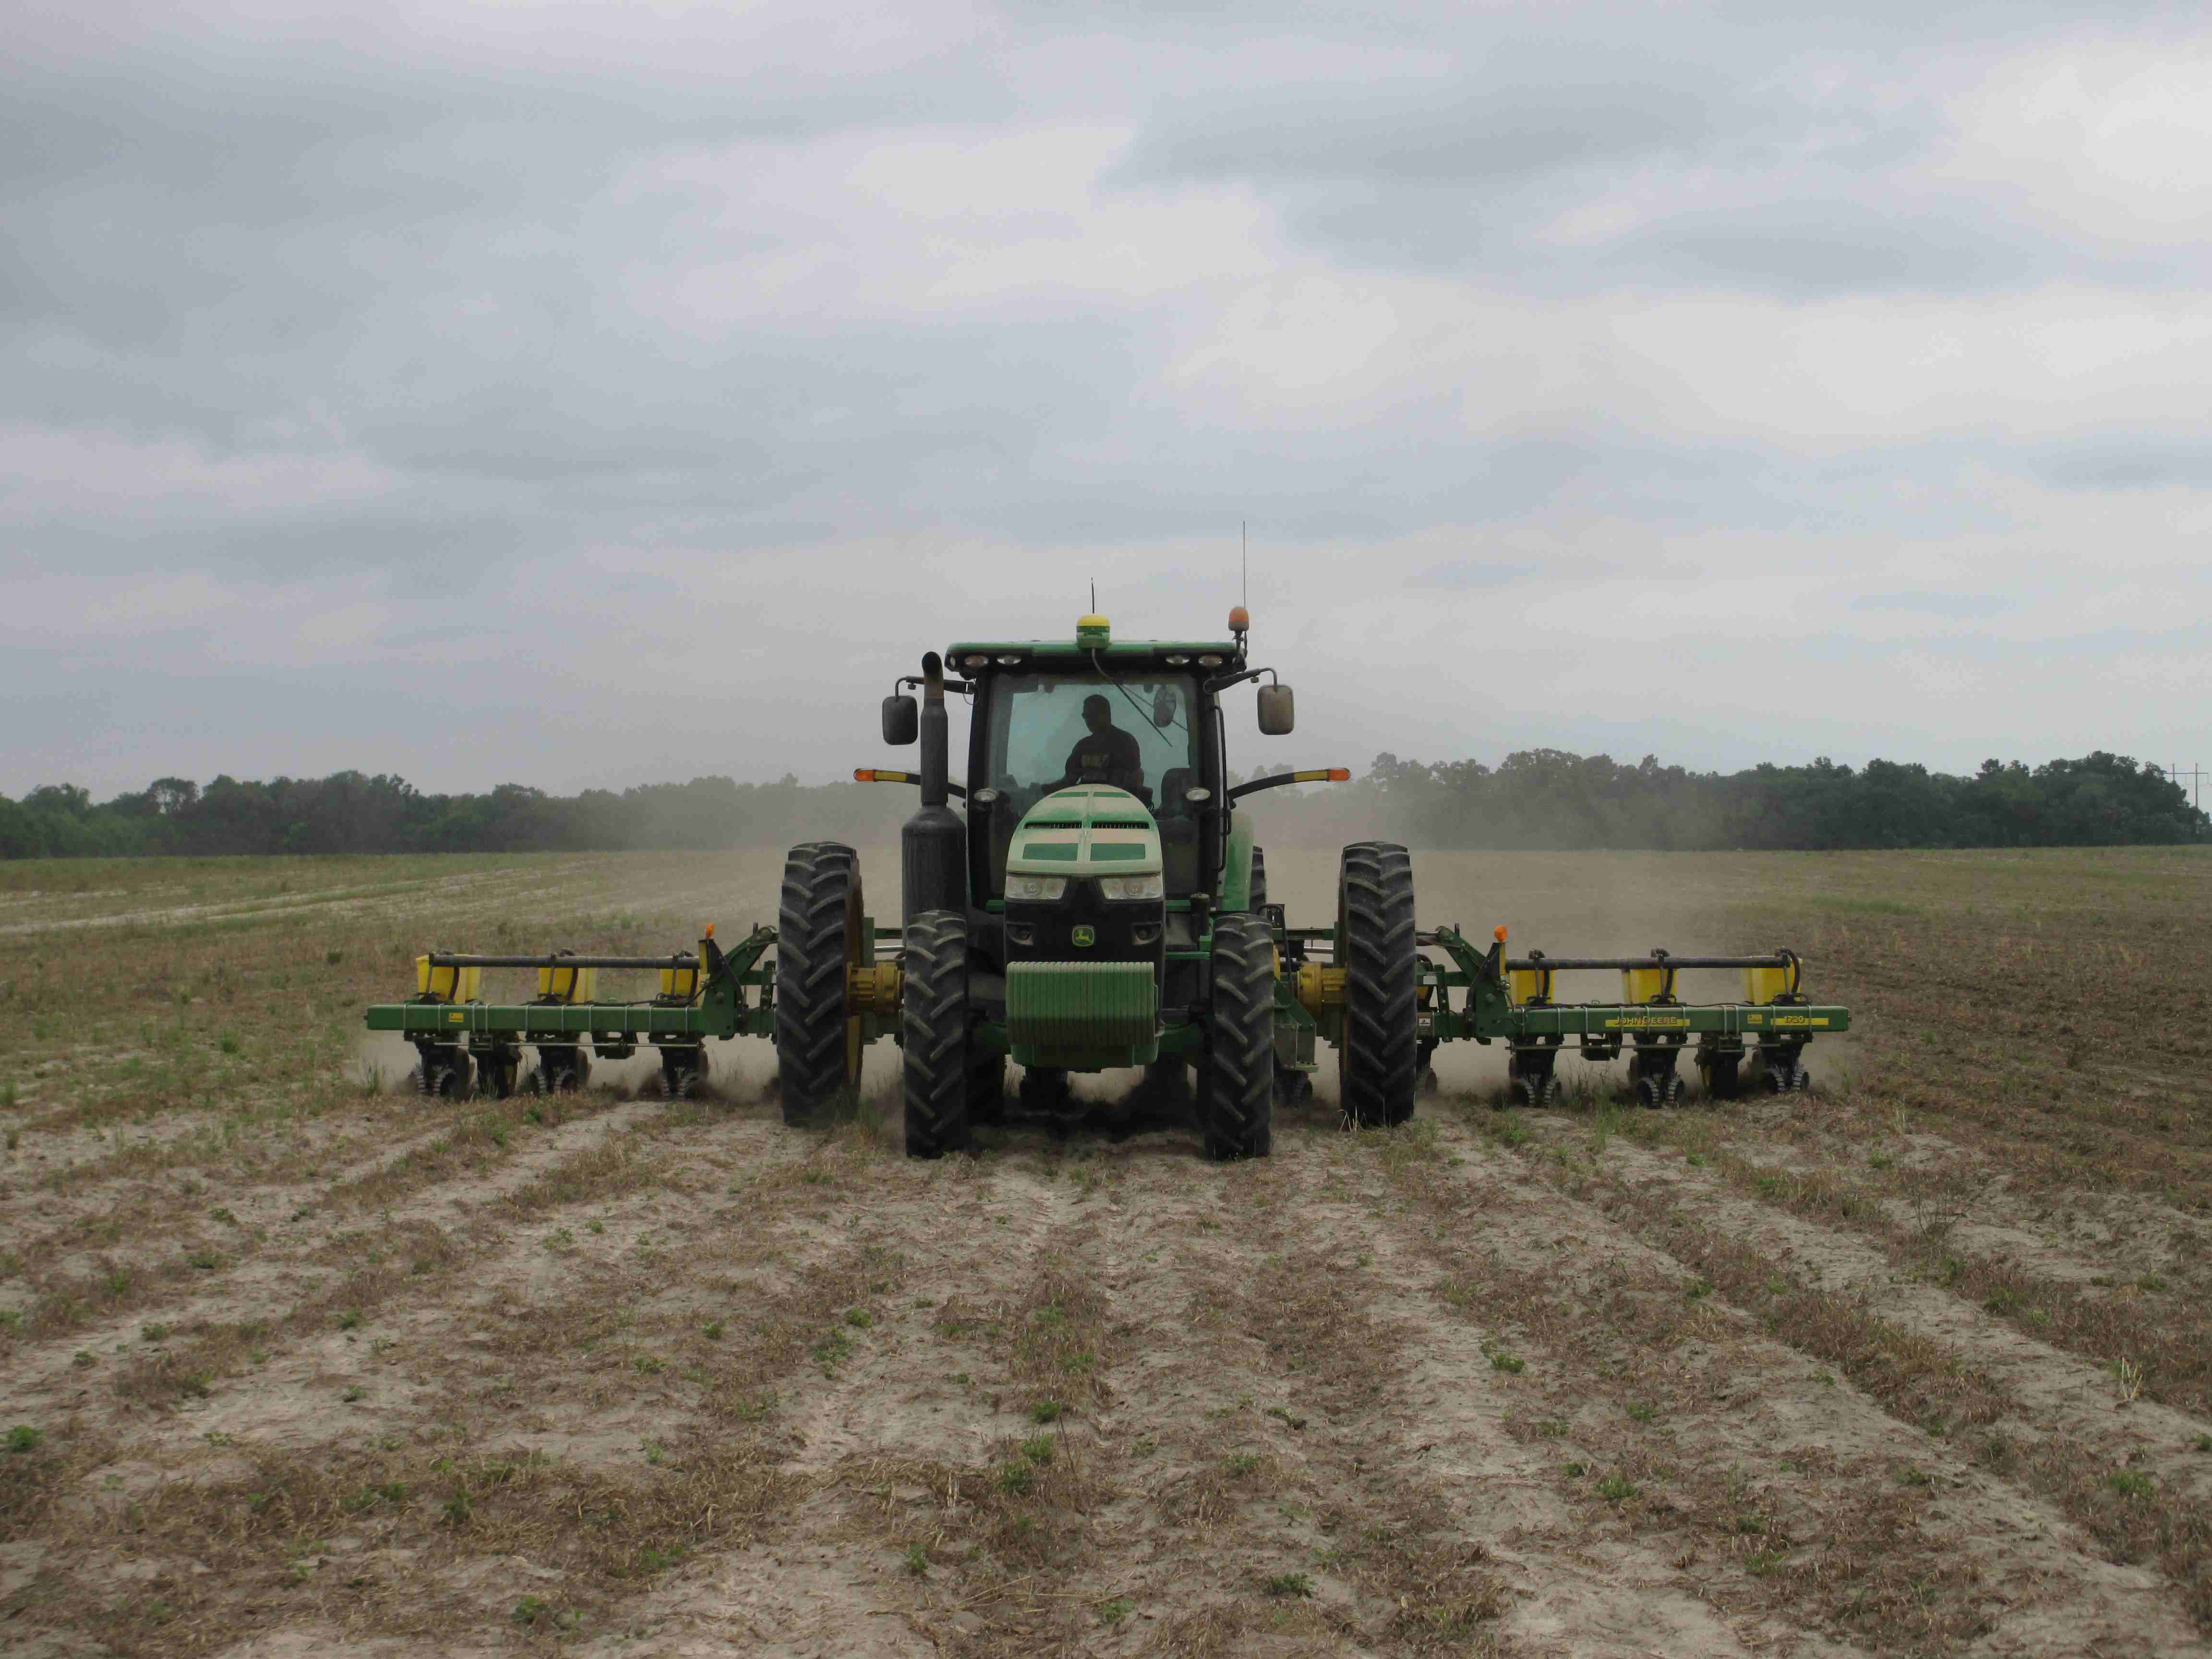 Planting cotton in Bacom, FL. Photo credit: J. Thompson